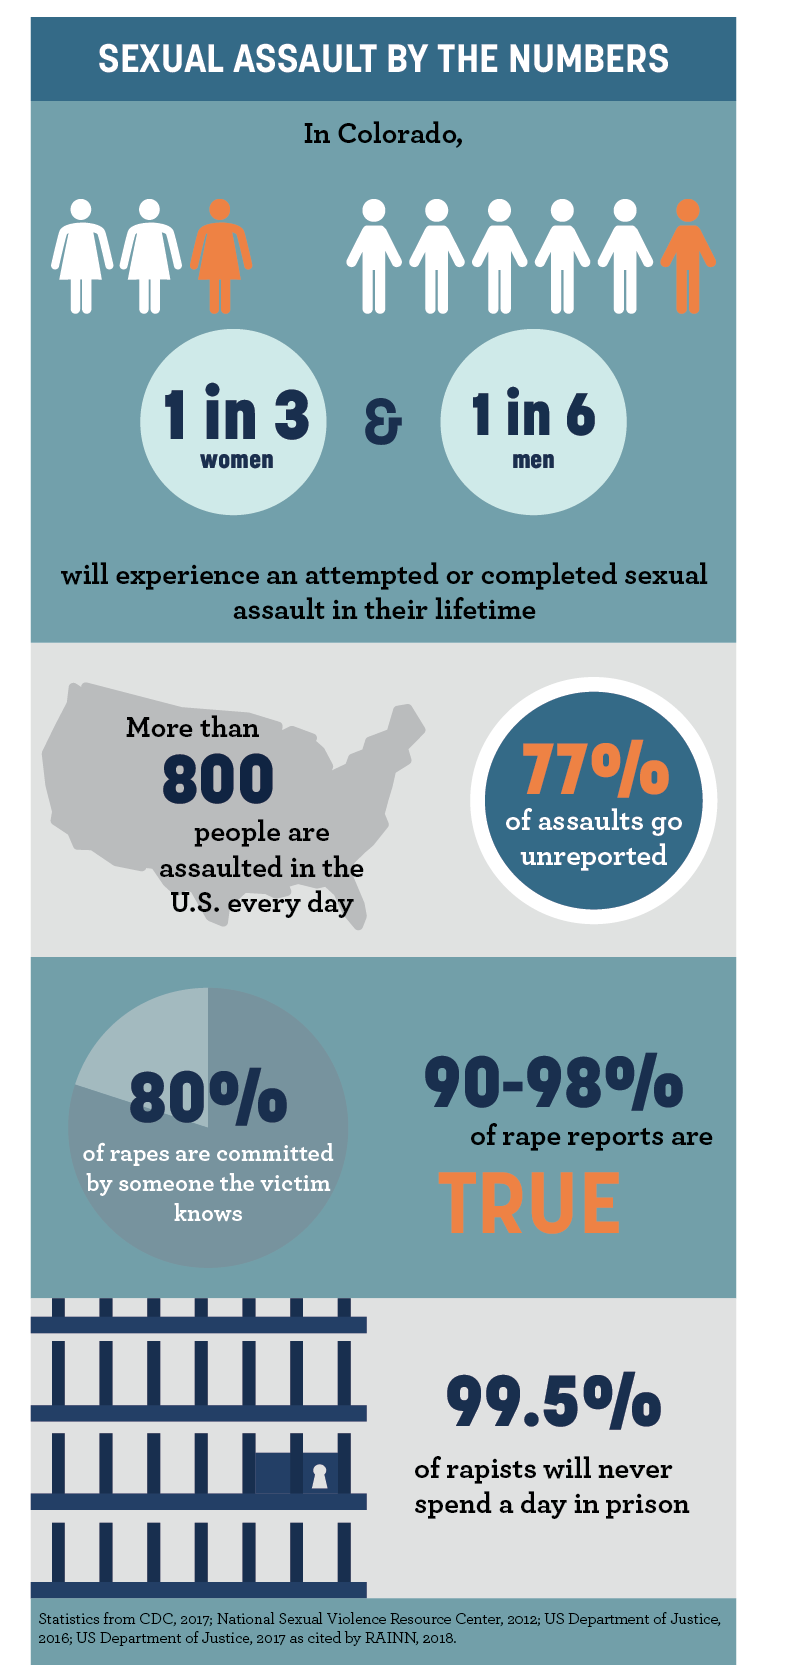 In Colorado, 1 in 3 women and 1 in 6 men will experience an attempted or completed sexual assault in their lifetime. More than 800 people are assaulted in the US every day. 77% of assaults go unreported. 80% of rapes are committed by someone the victim kn